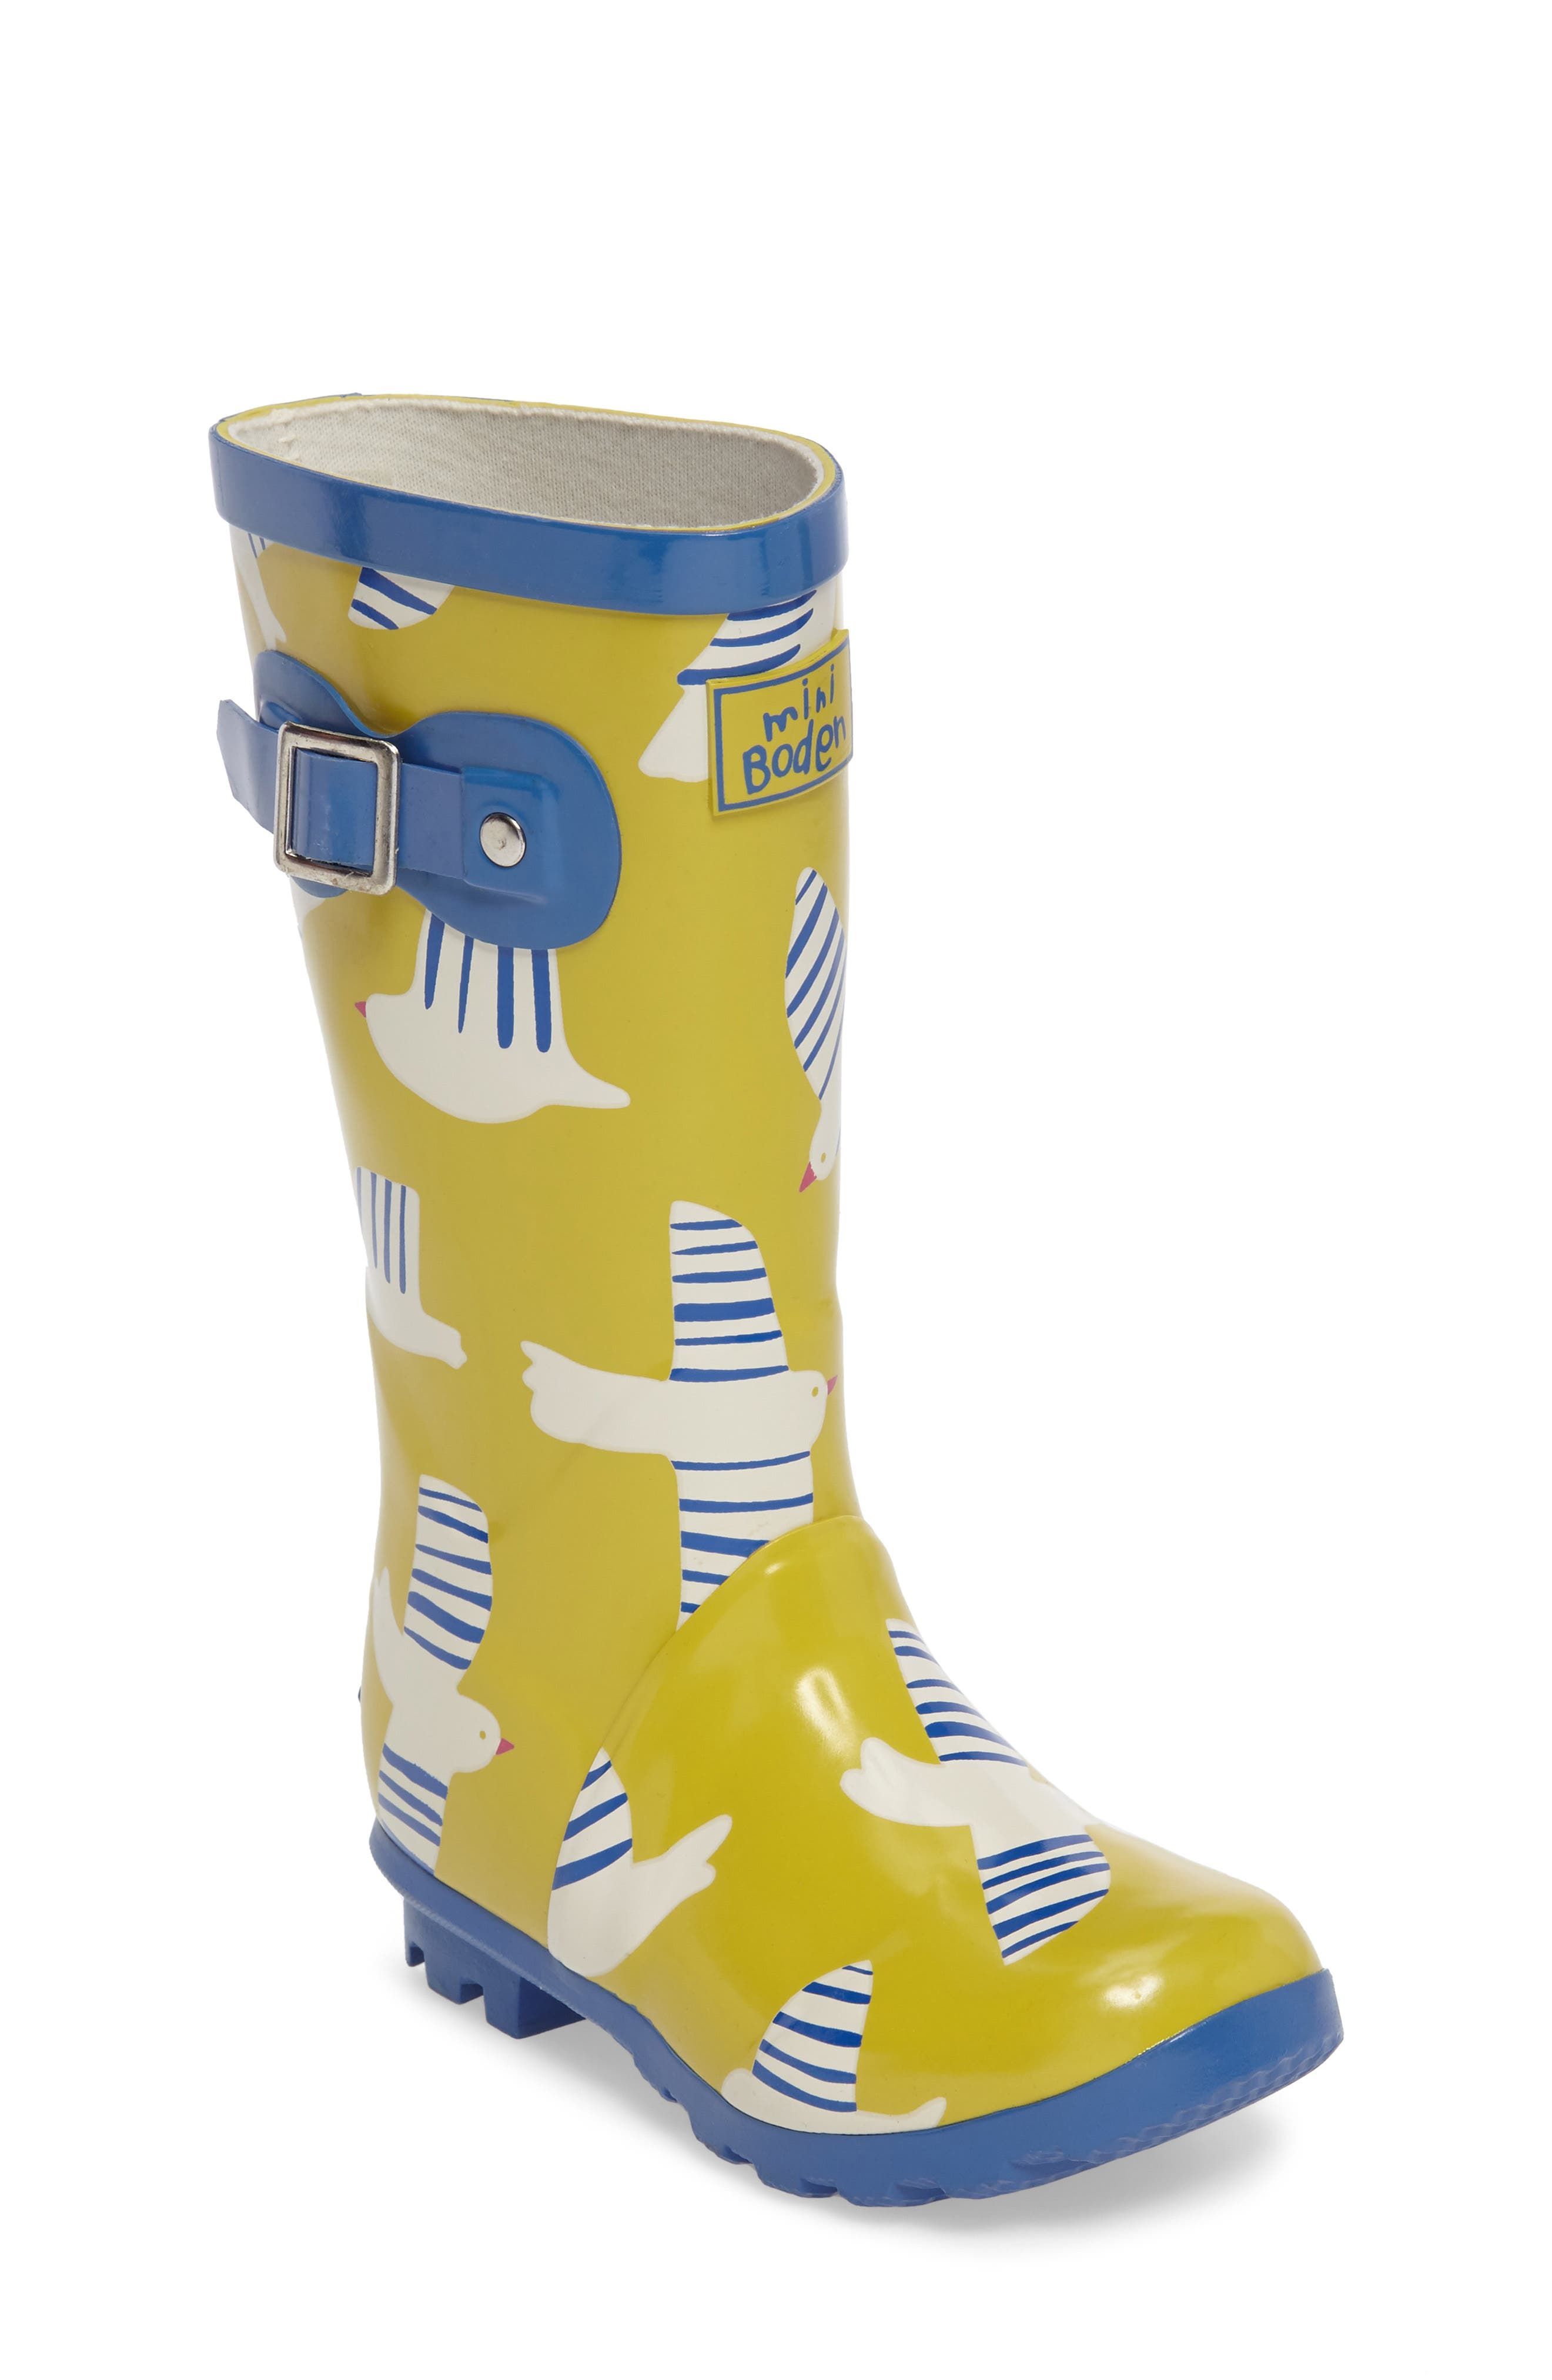 Main Image - Mini Boden Printed Wellies (Toddler & Little Kid)